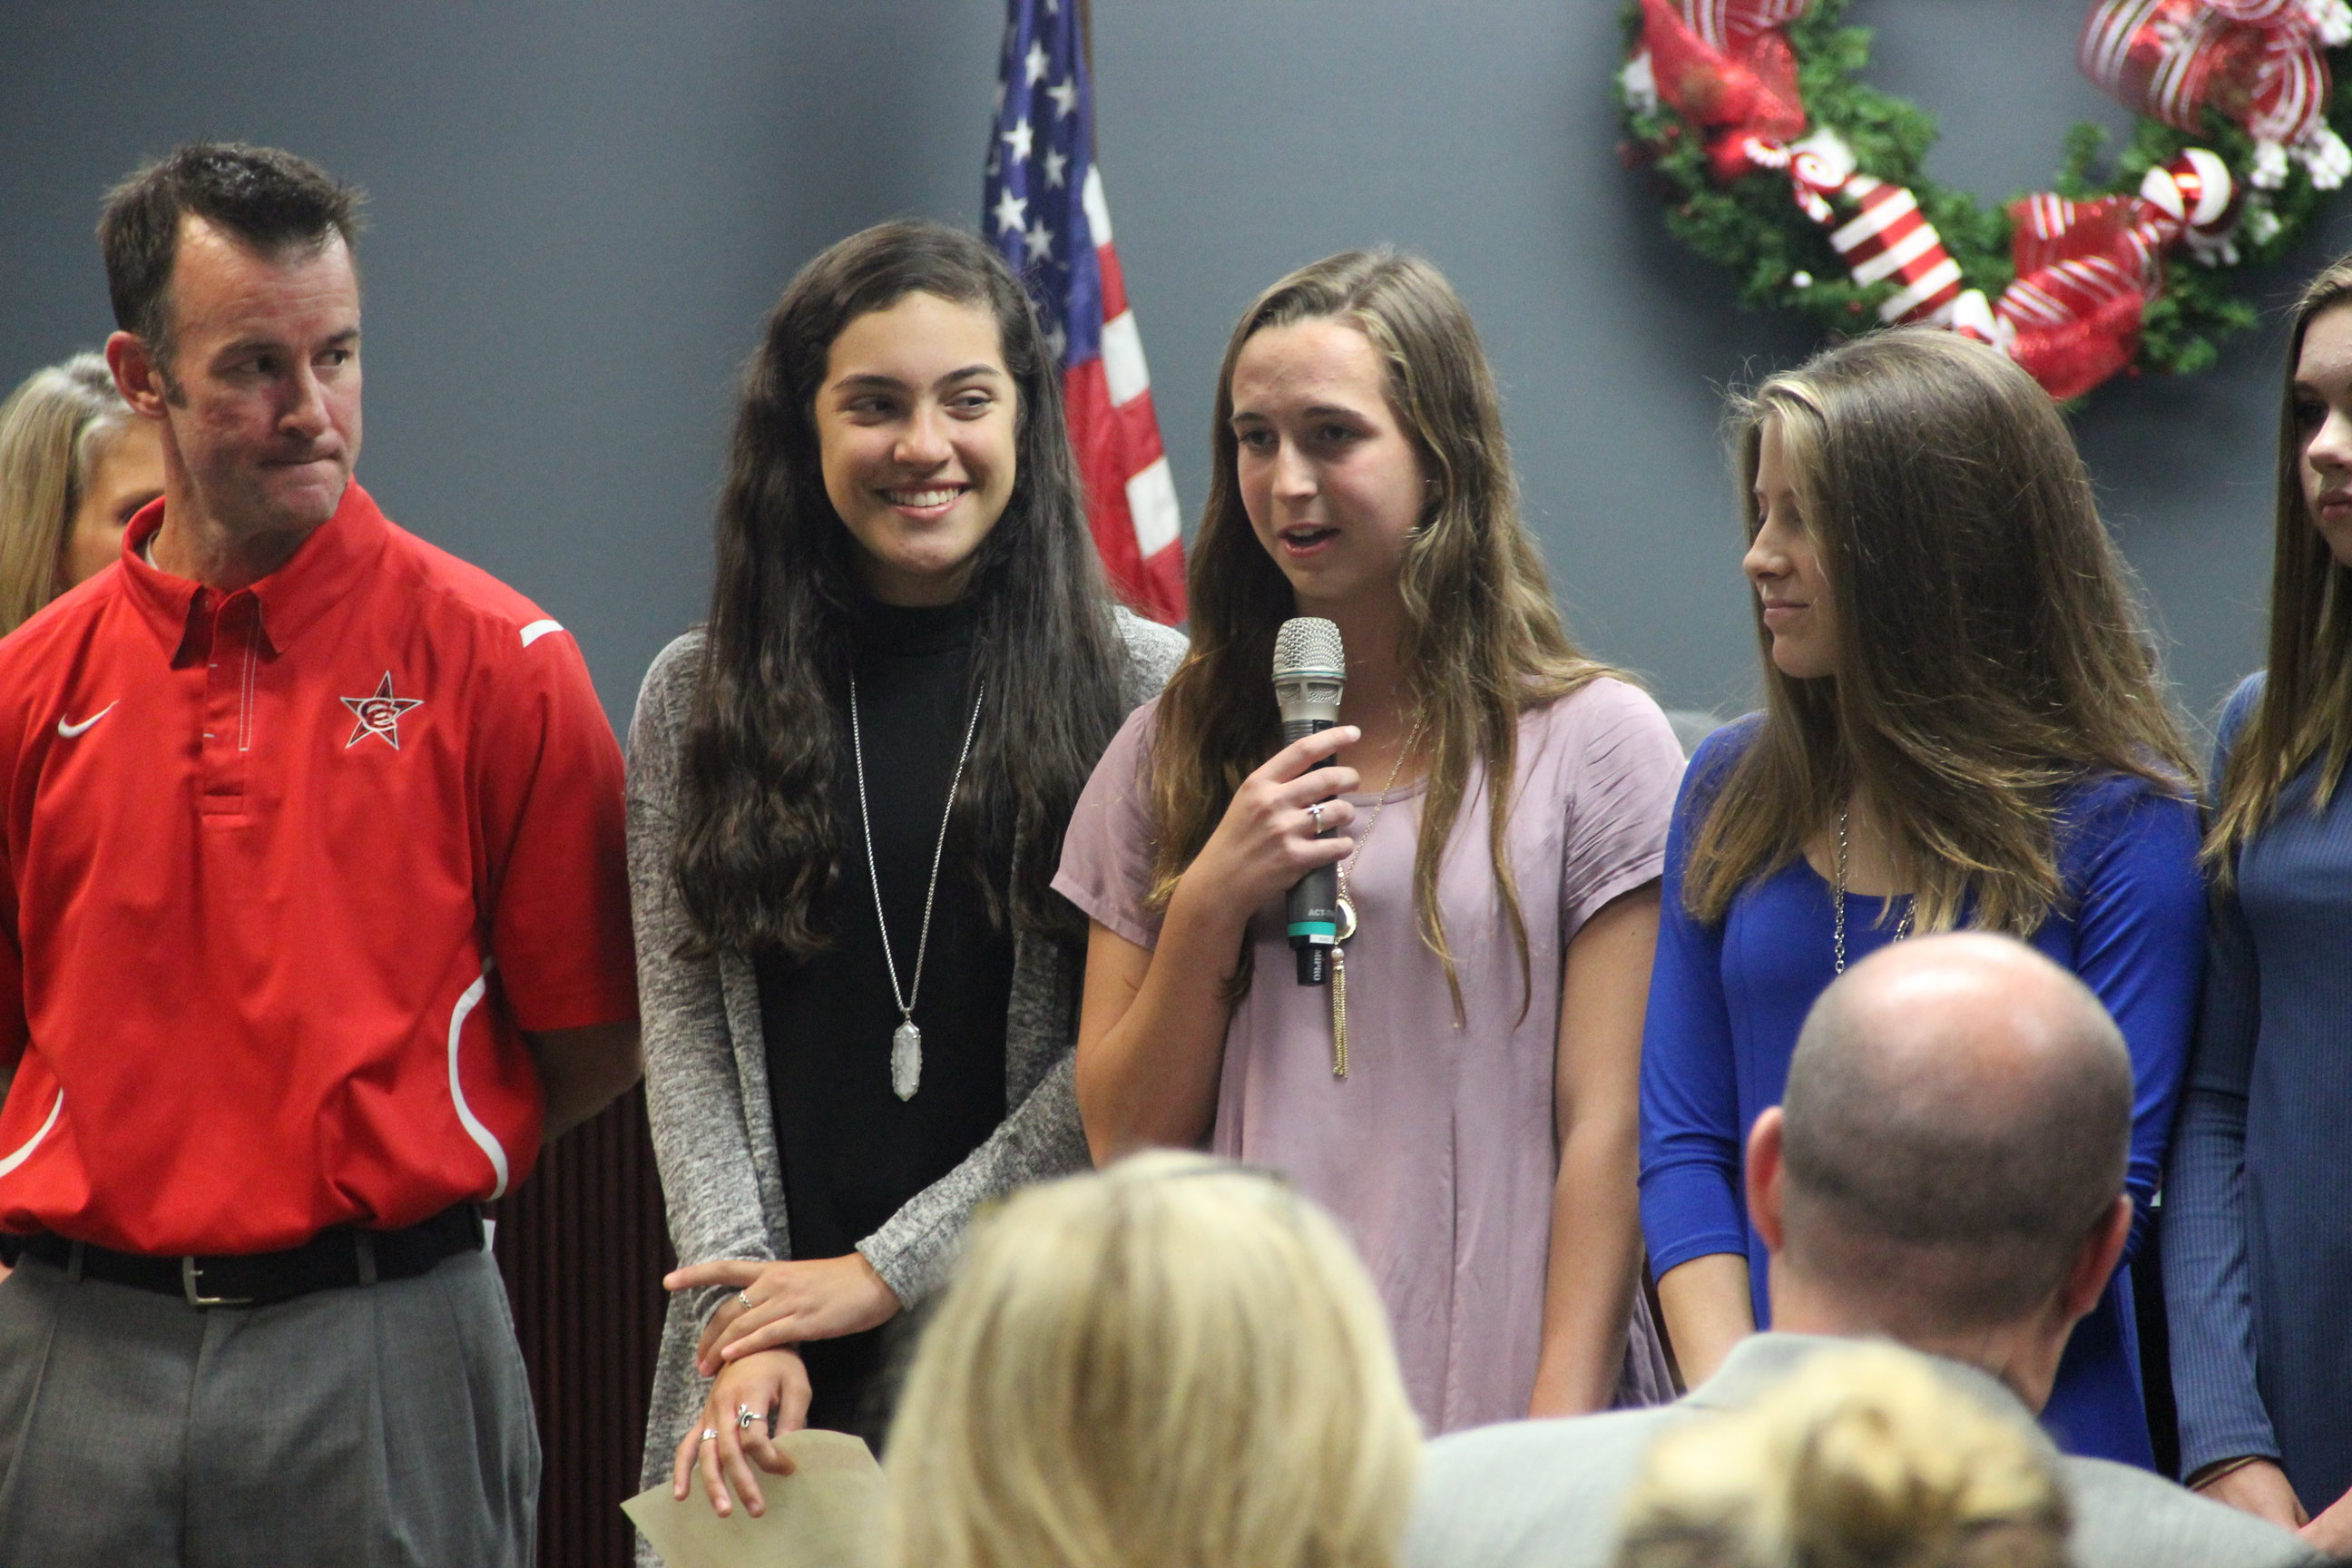 Coppell High School senior Miranda Dickson is recognized alongside the CHS girls cross country team at a Board meeting on Monday. Dickson shared her intent to attend the University of Texas for Business. Photo by Amanda Hair.